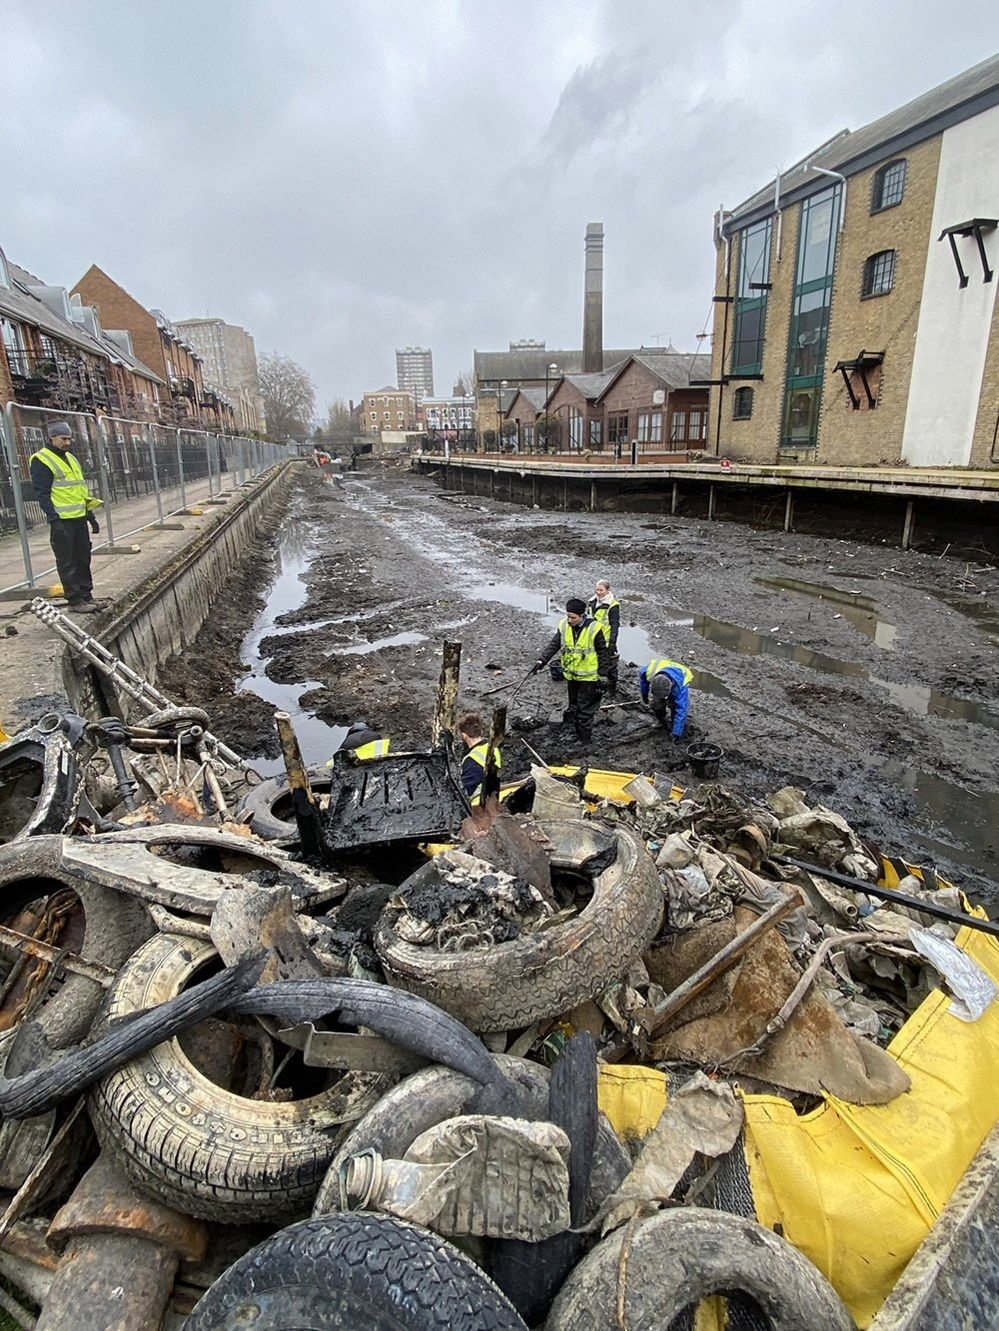 Removing old tyres from the canal bed